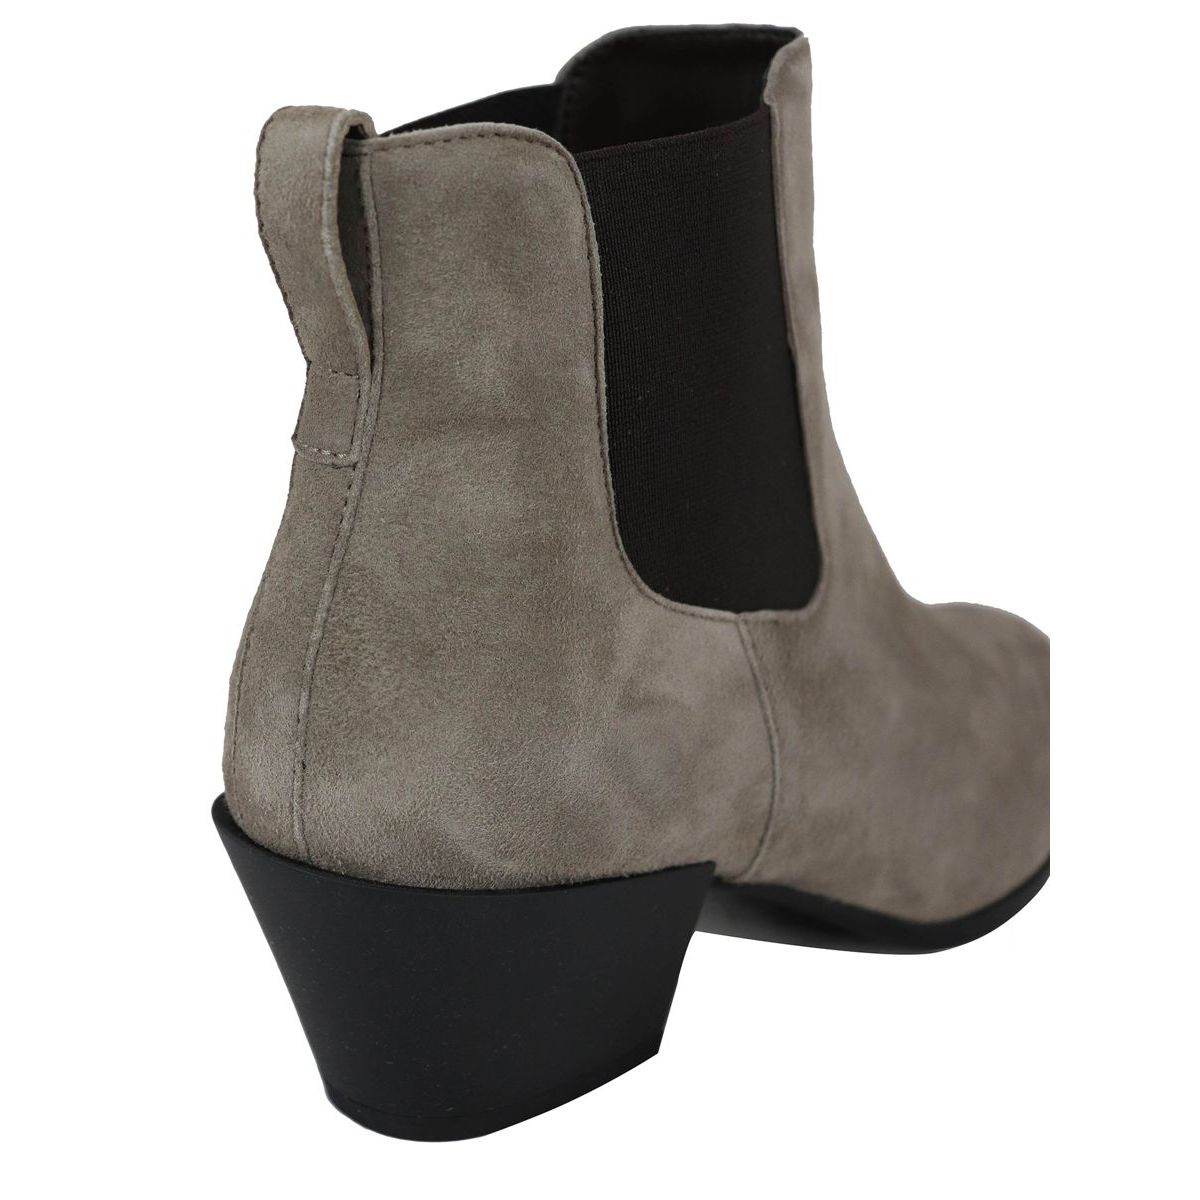 H501 CHELSEA ankle boots with Texan heel Tortora Hogan